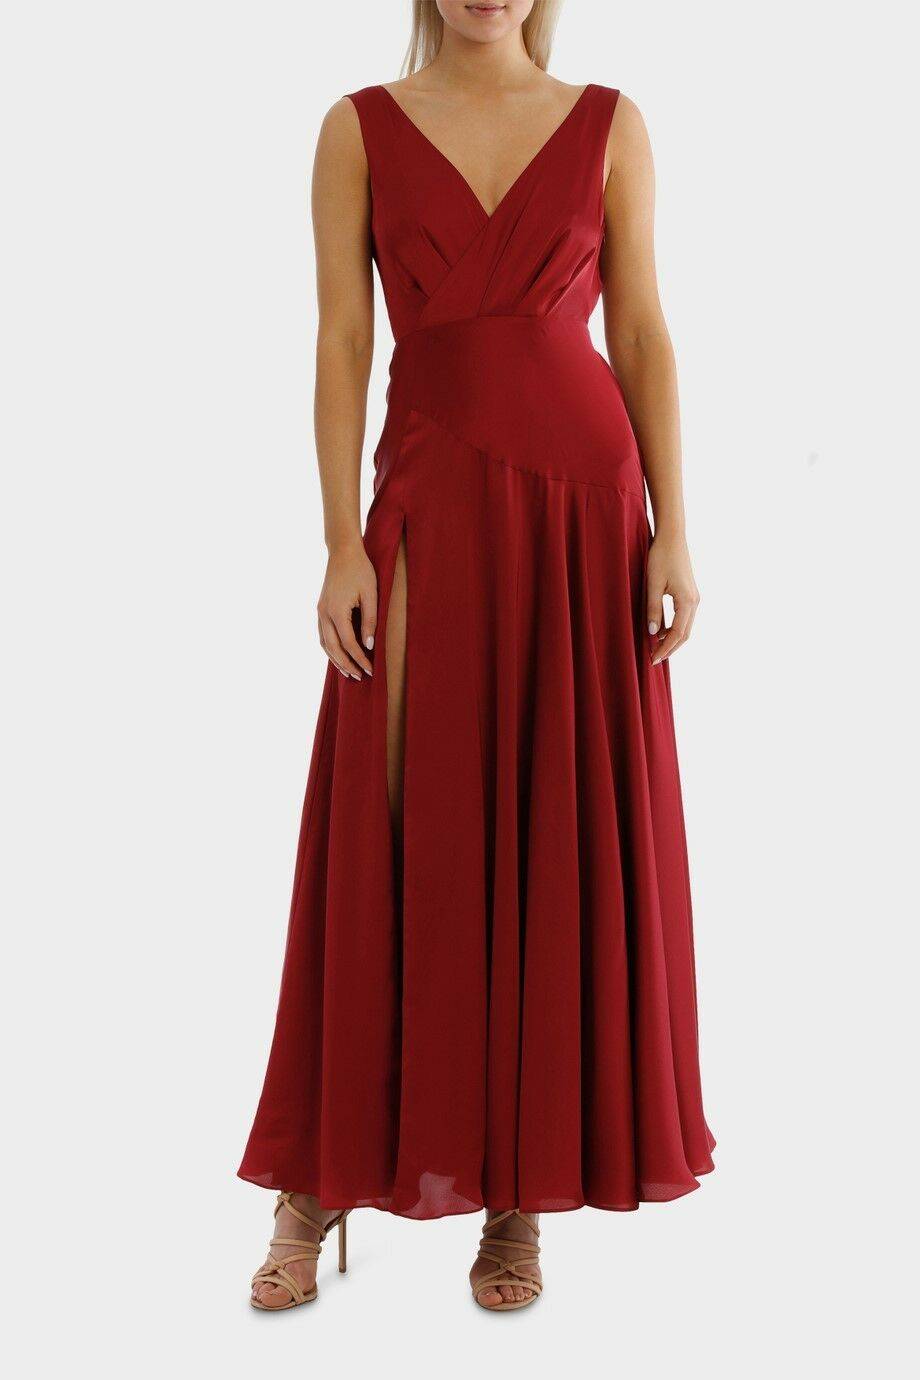 Fame & Partners New  The Escala Dress, Red, Size10. MSRP  279